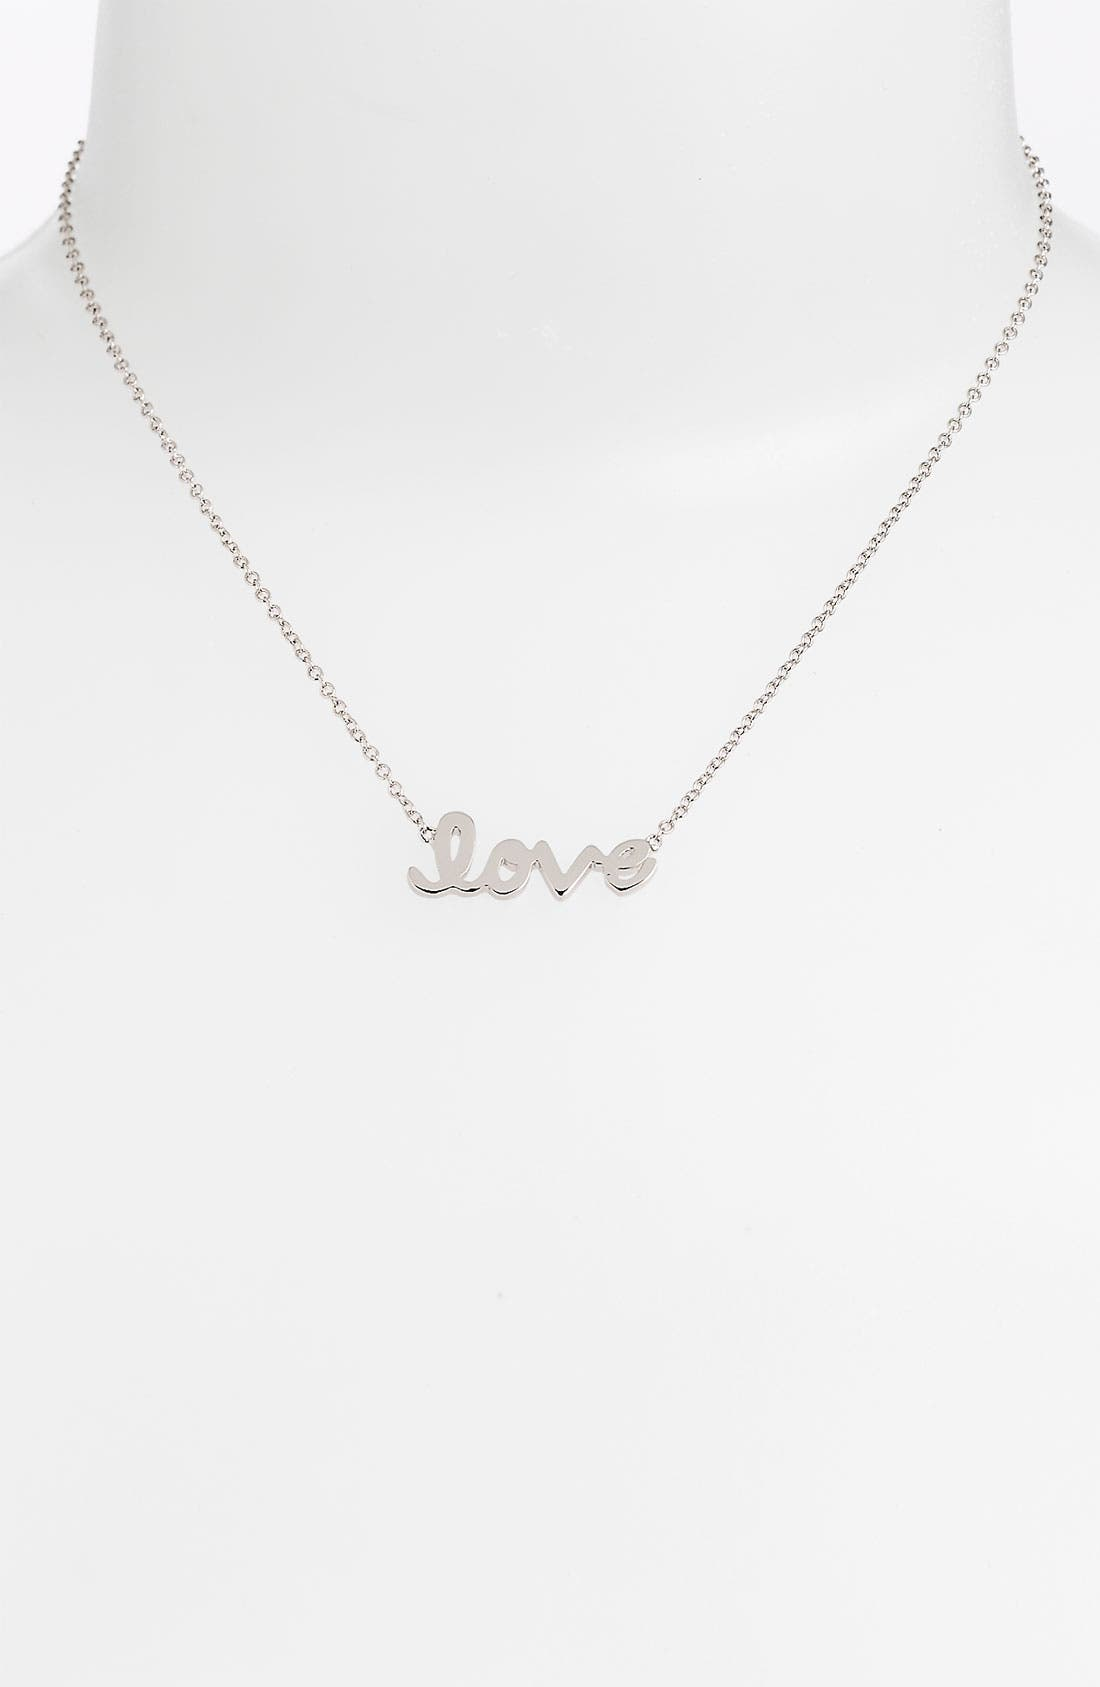 Alternate Image 1 Selected - Ariella Collection 'Messages - Love' Script Pendant Necklace (Nordstrom Exclusive)